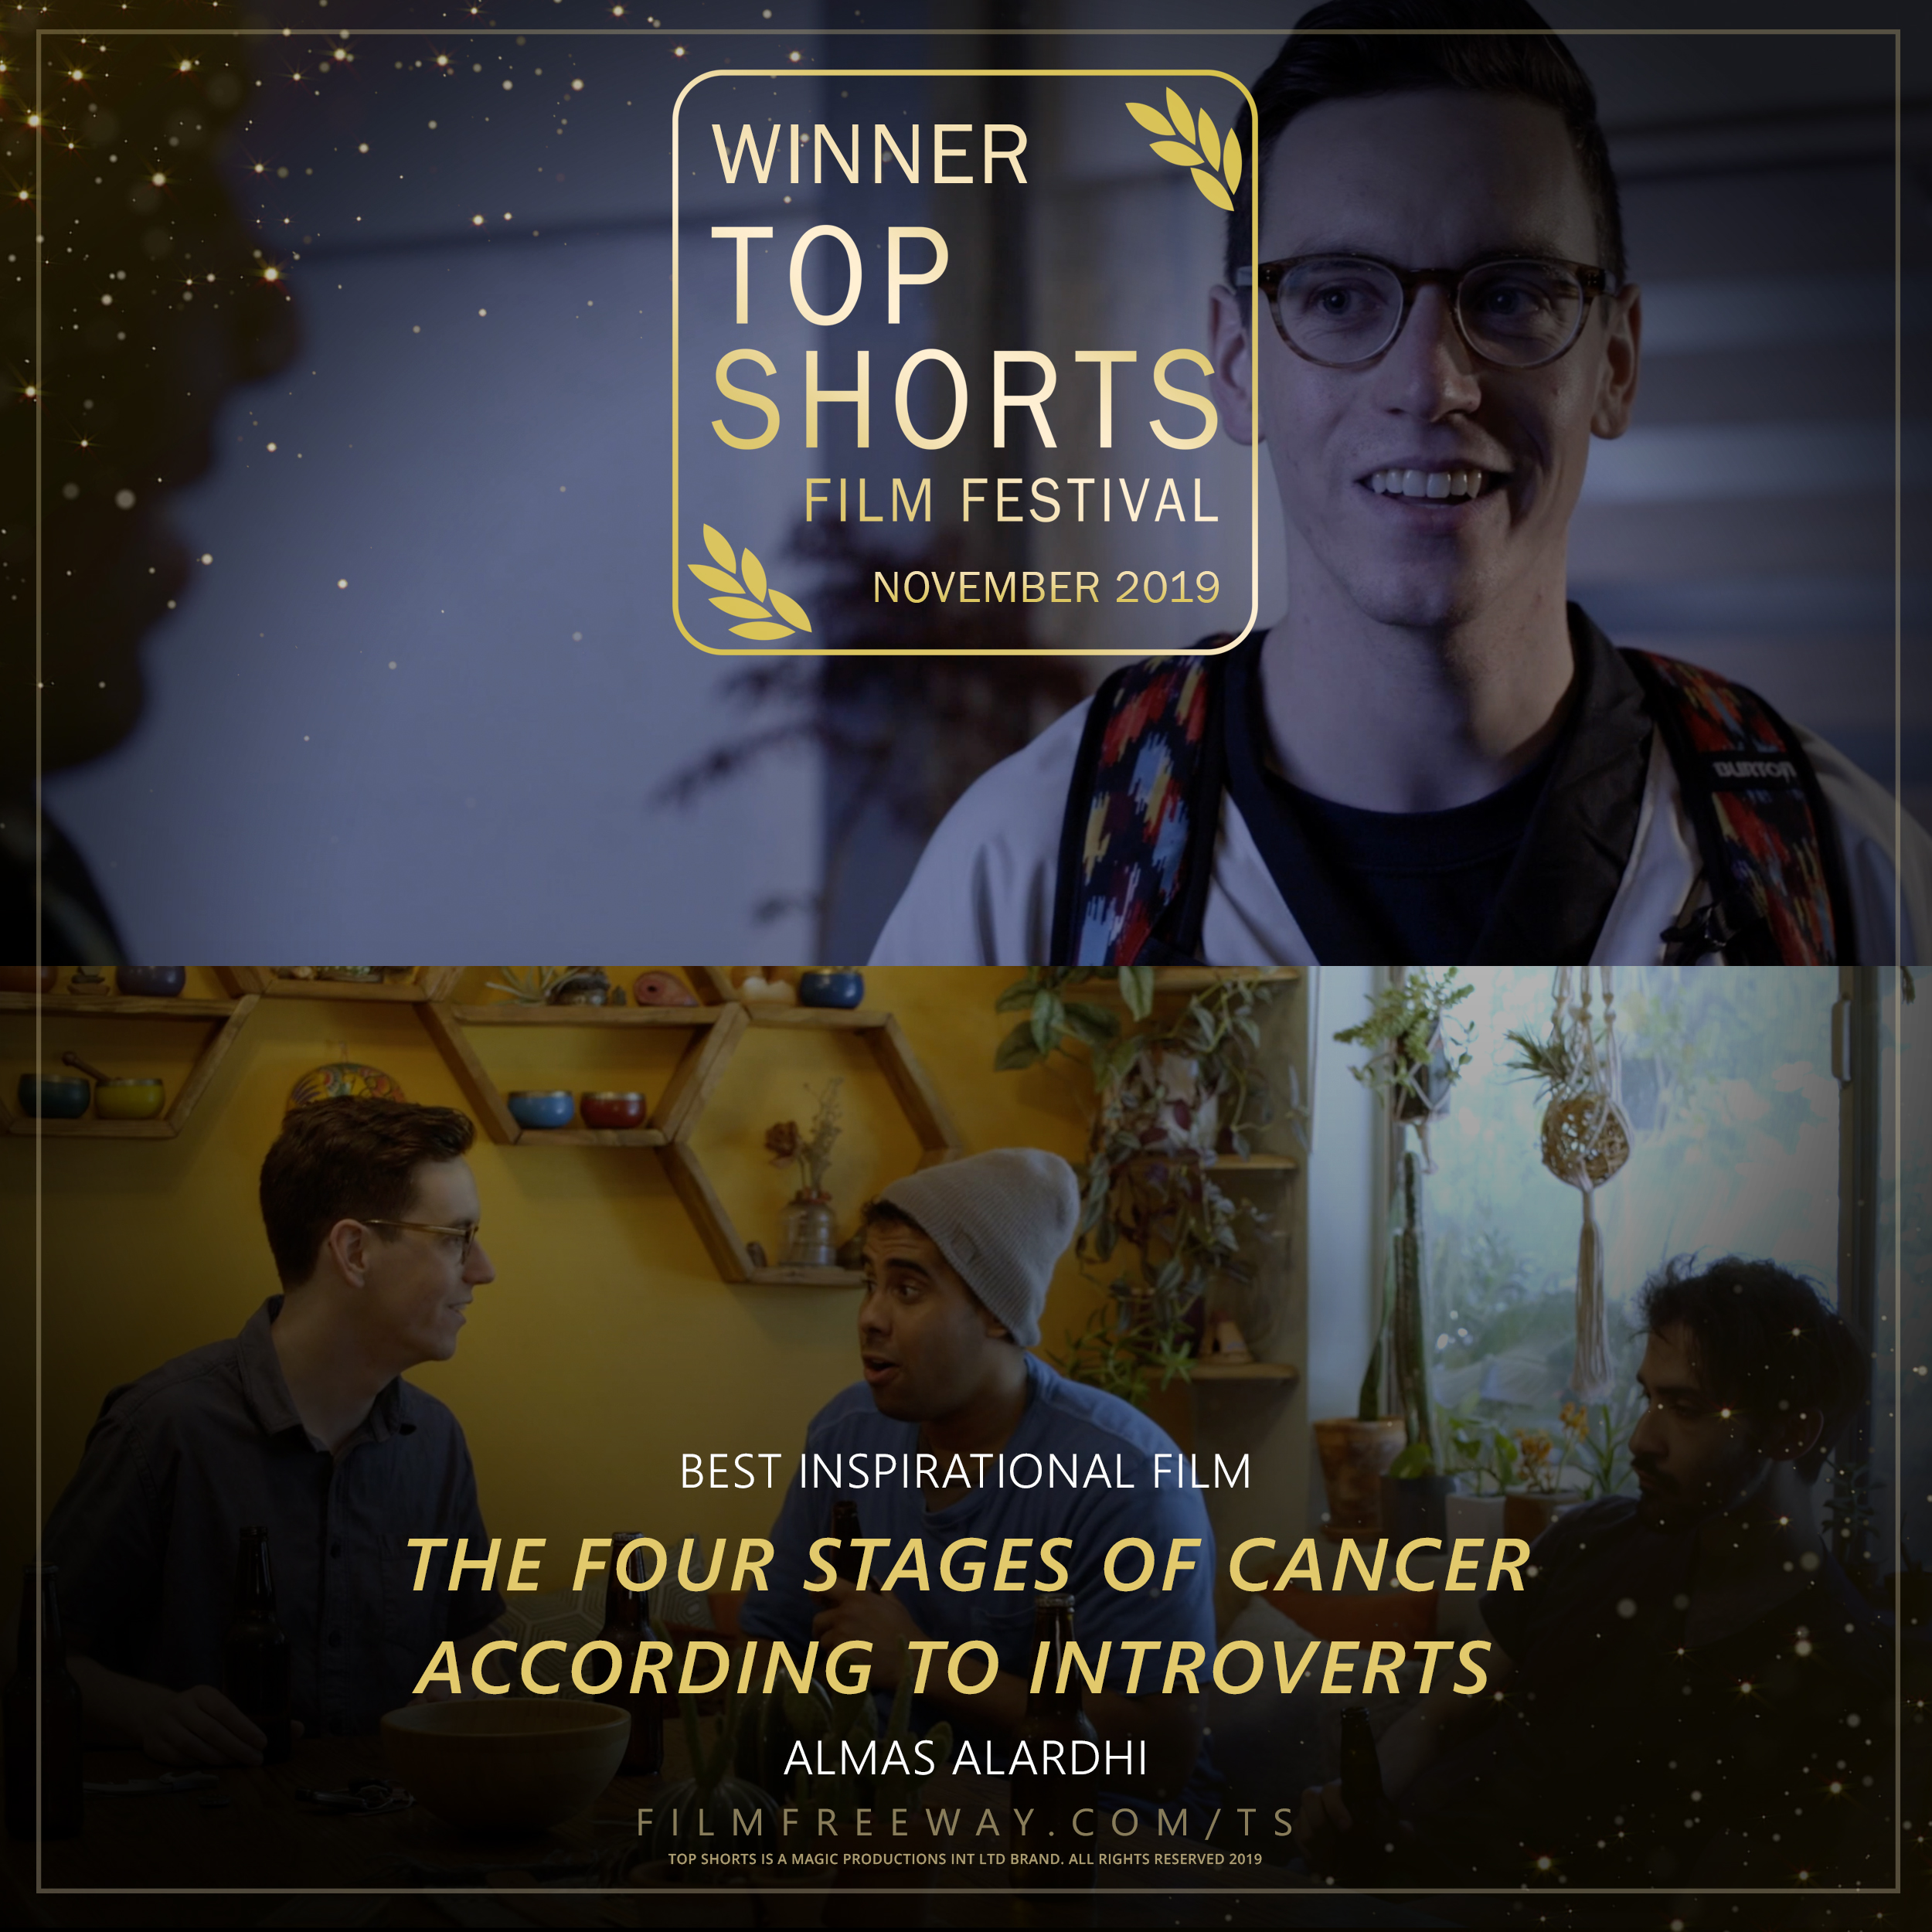 The Four Stages of Cancer According to I